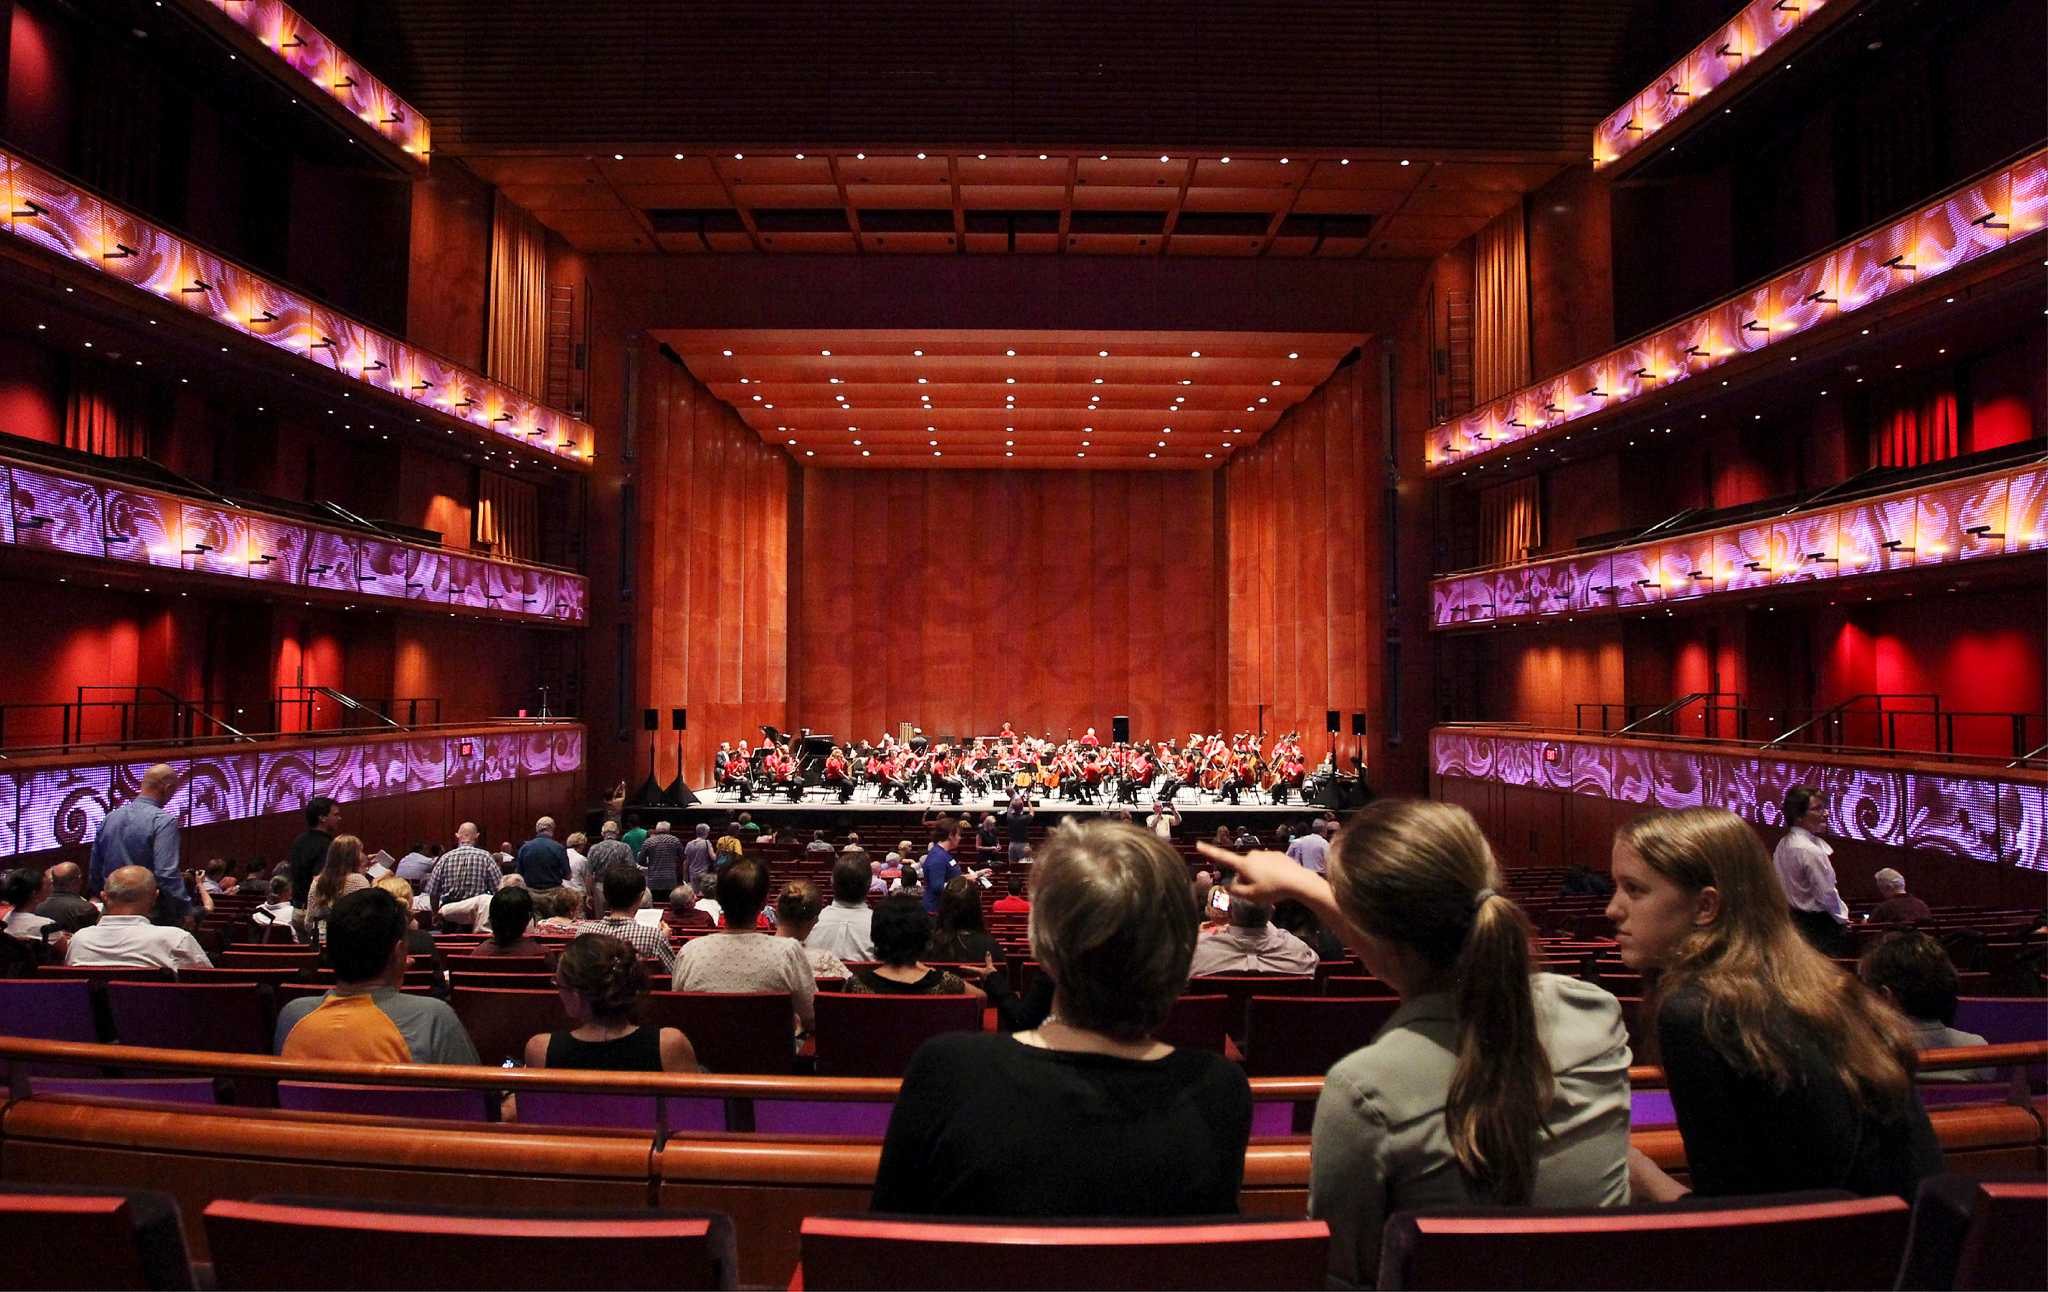 Tobin Center S Acoustics To Rank With The Best